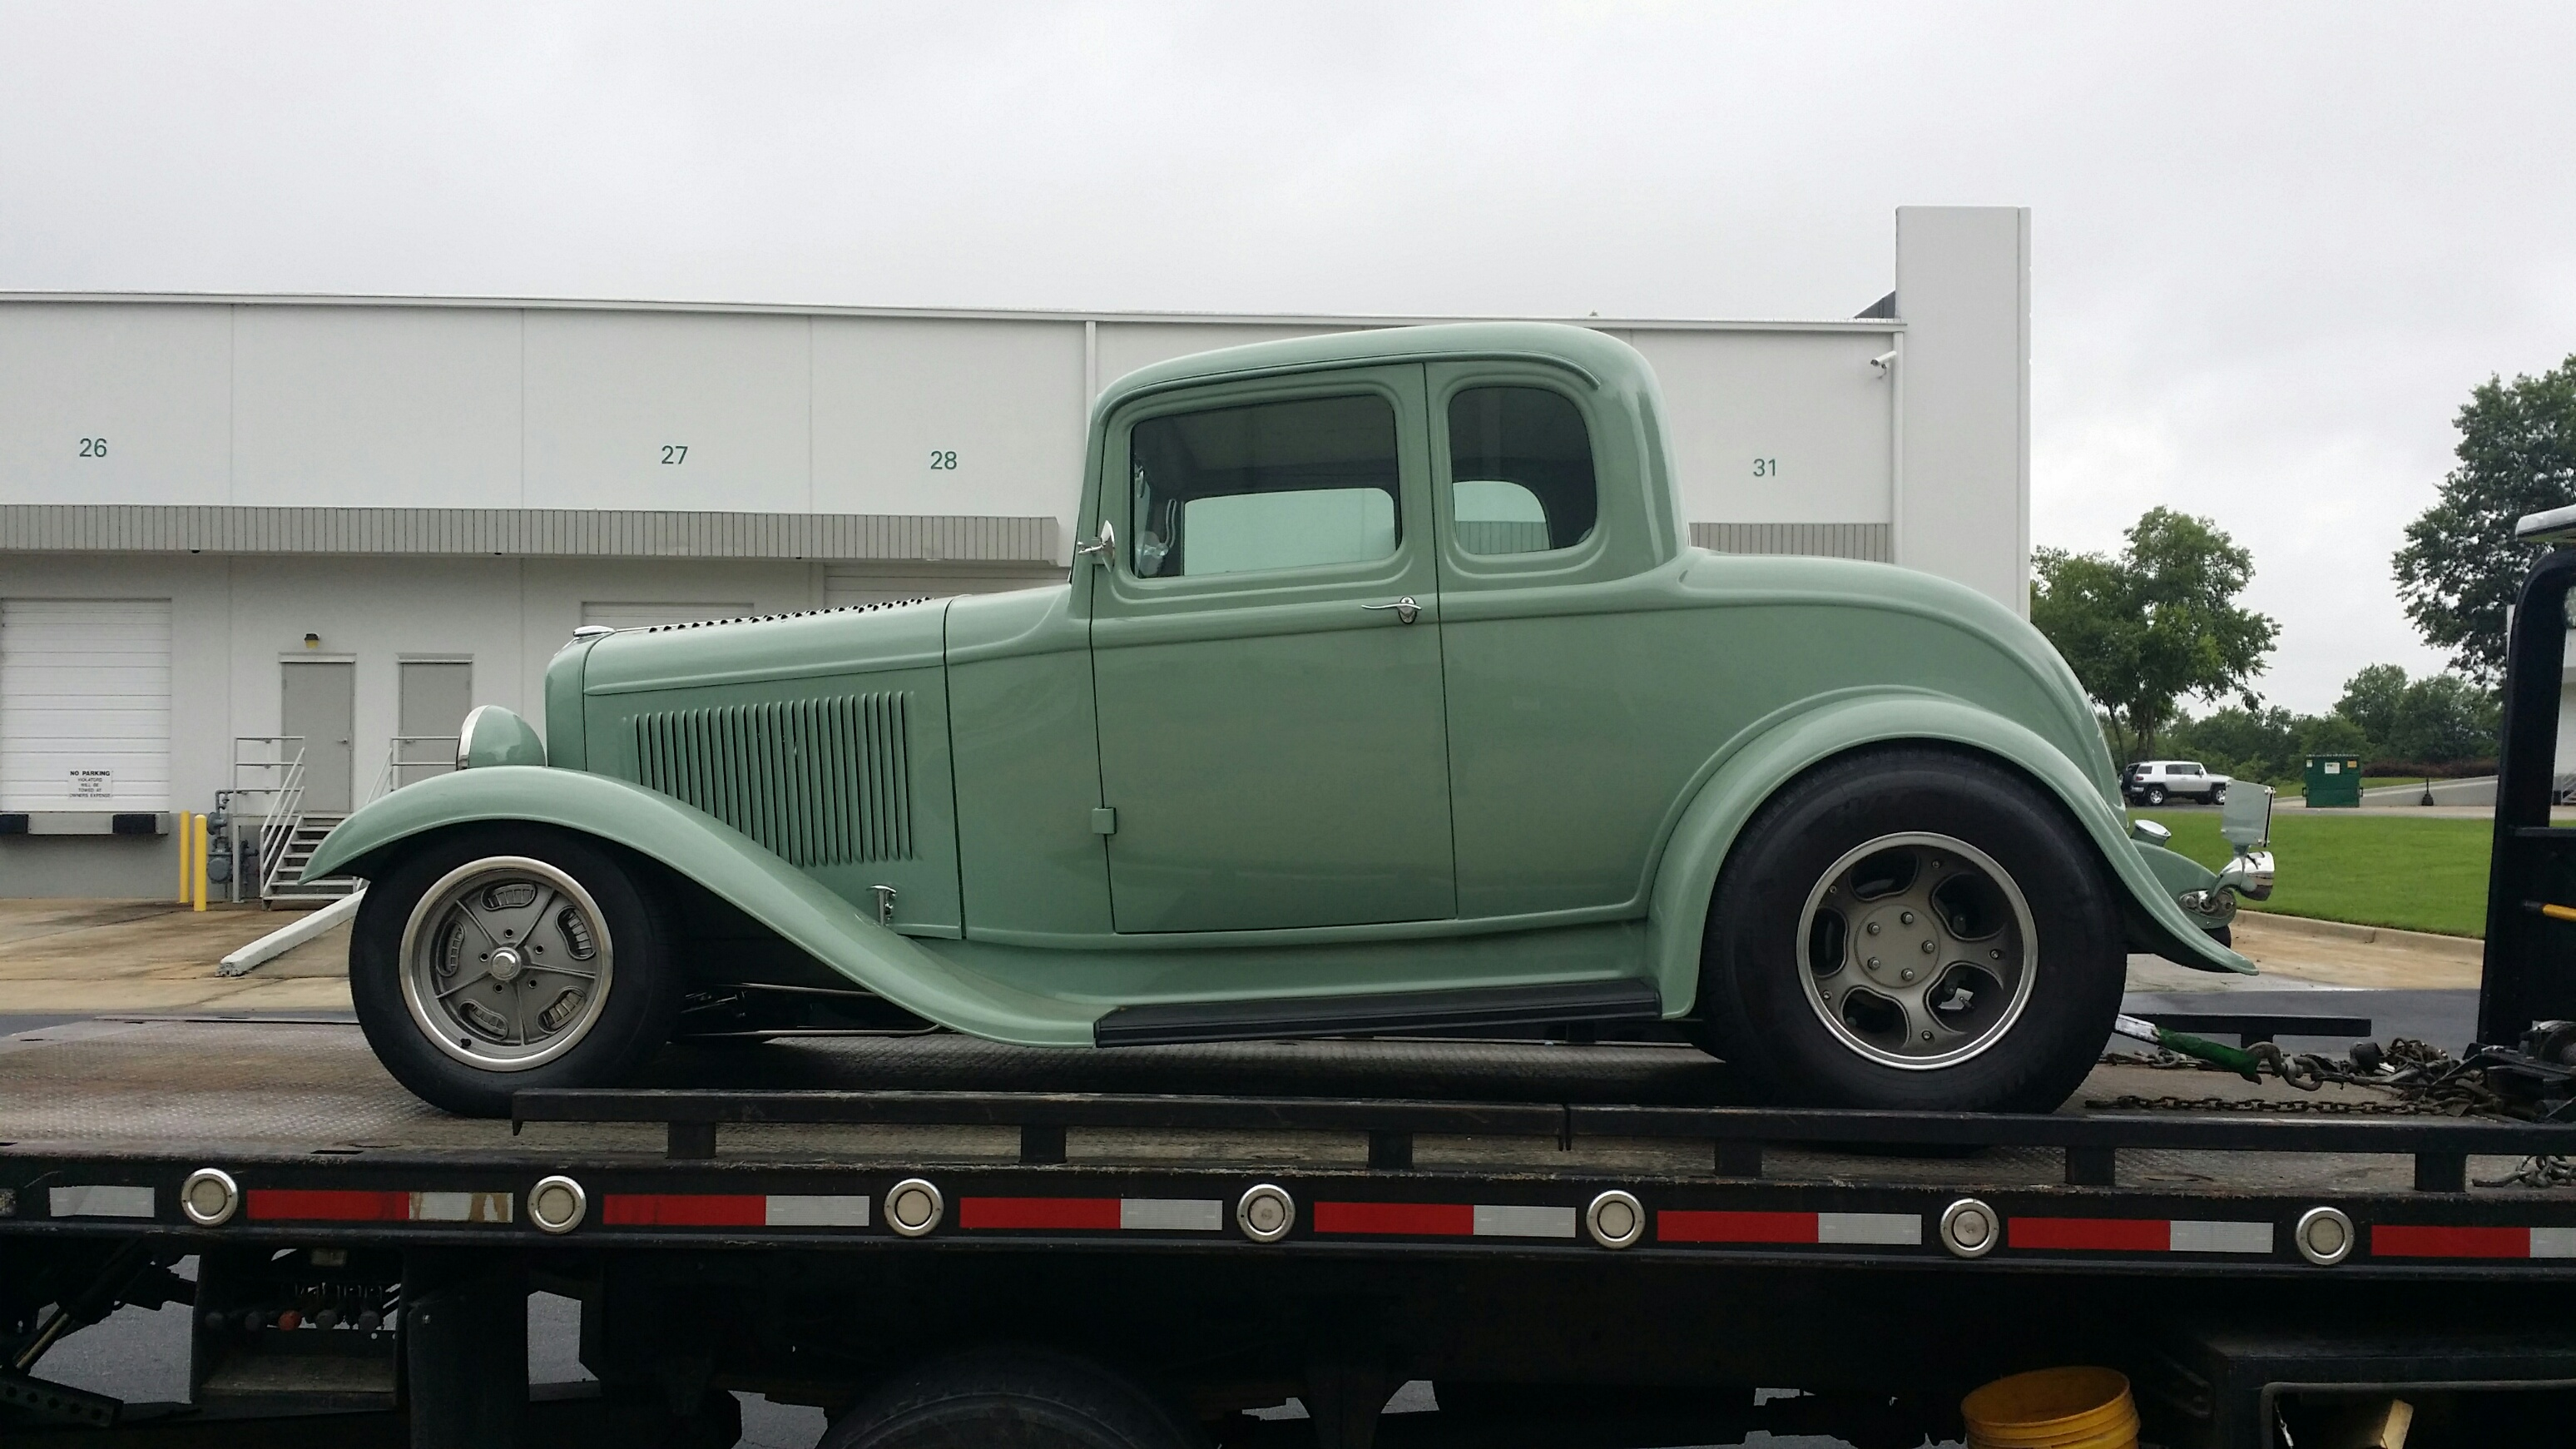 EAF Atlanta imports a 1932 Ford for an Exhibition of Antique cars